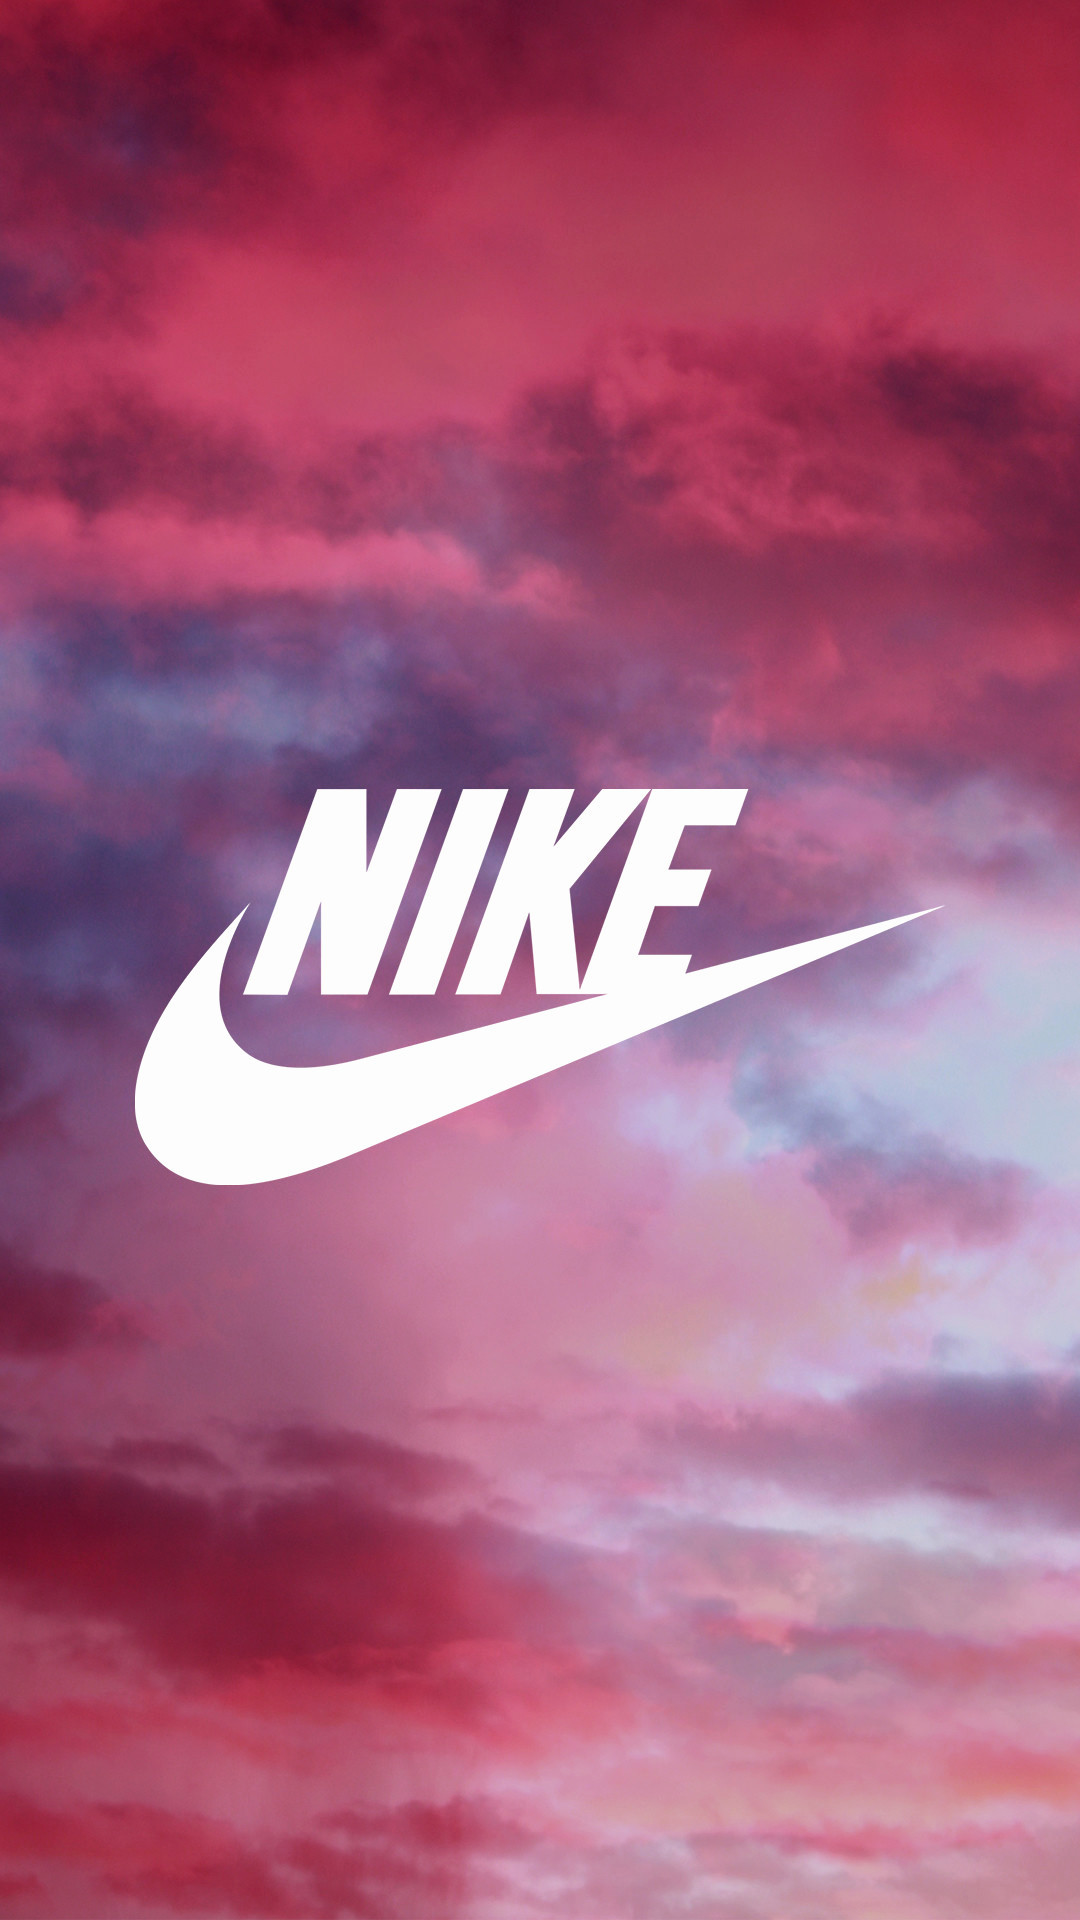 Nike Wallpapers Hd Wallpaper Collections 4kwallpaper Wiki